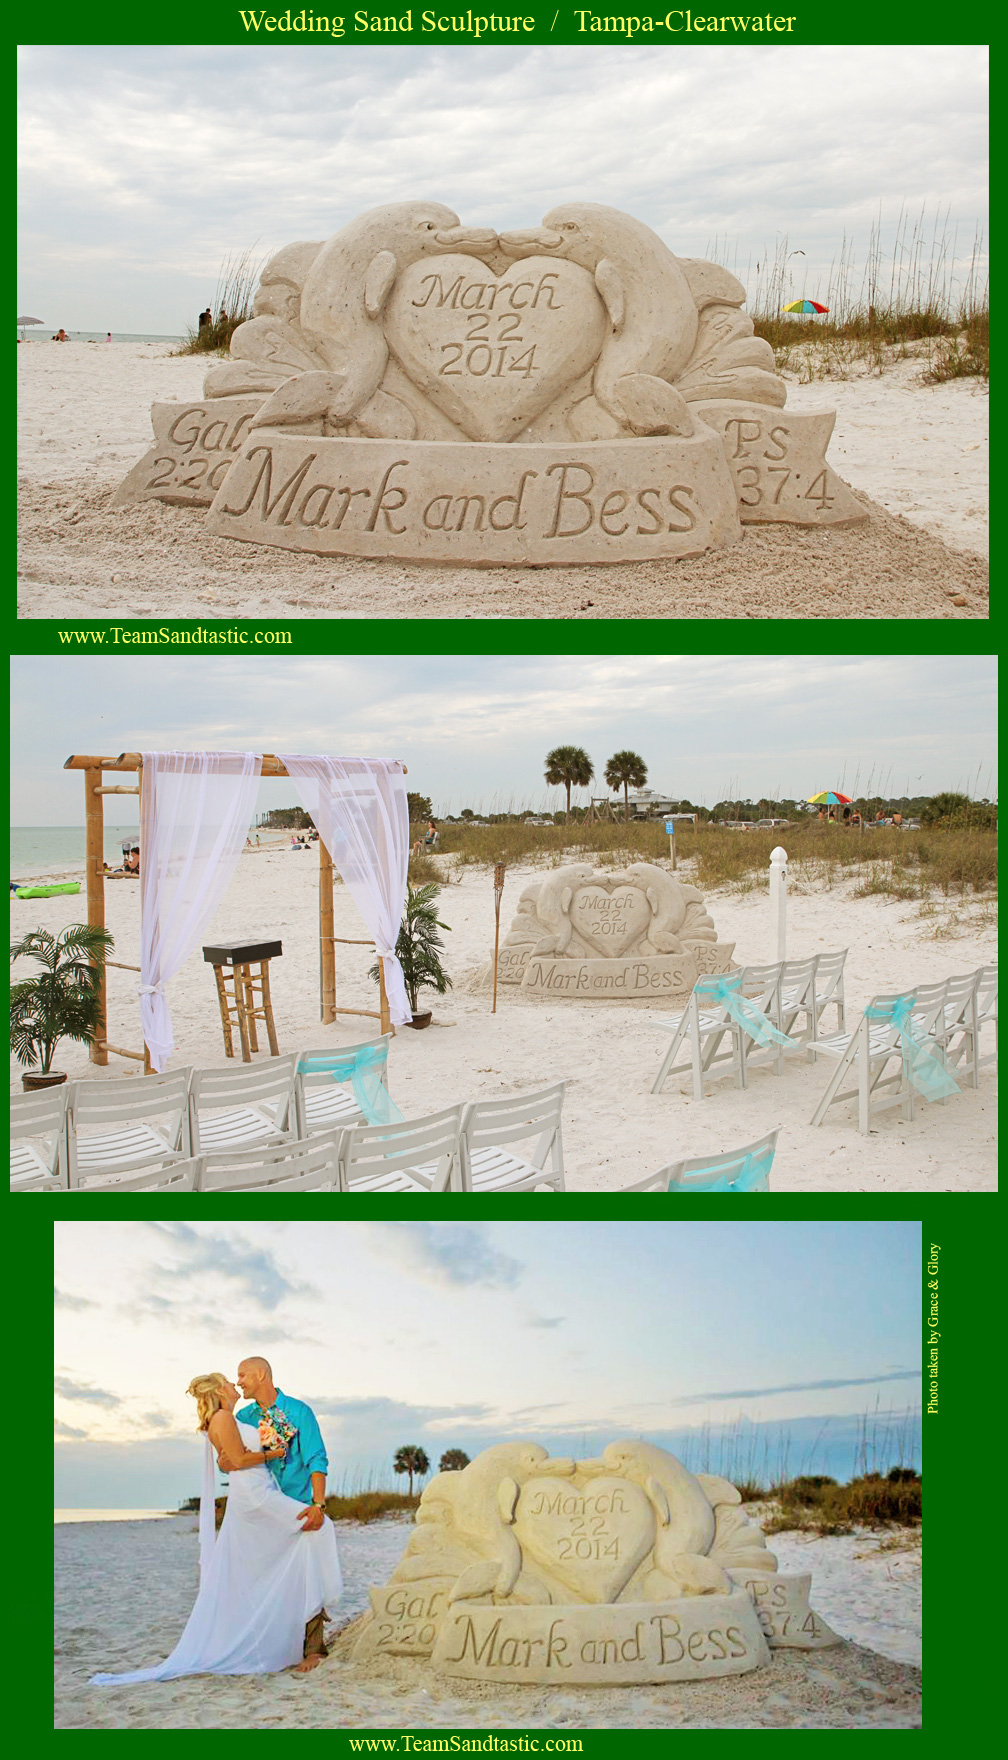 Wedding & Proposal Sand Sculpture Dolphin